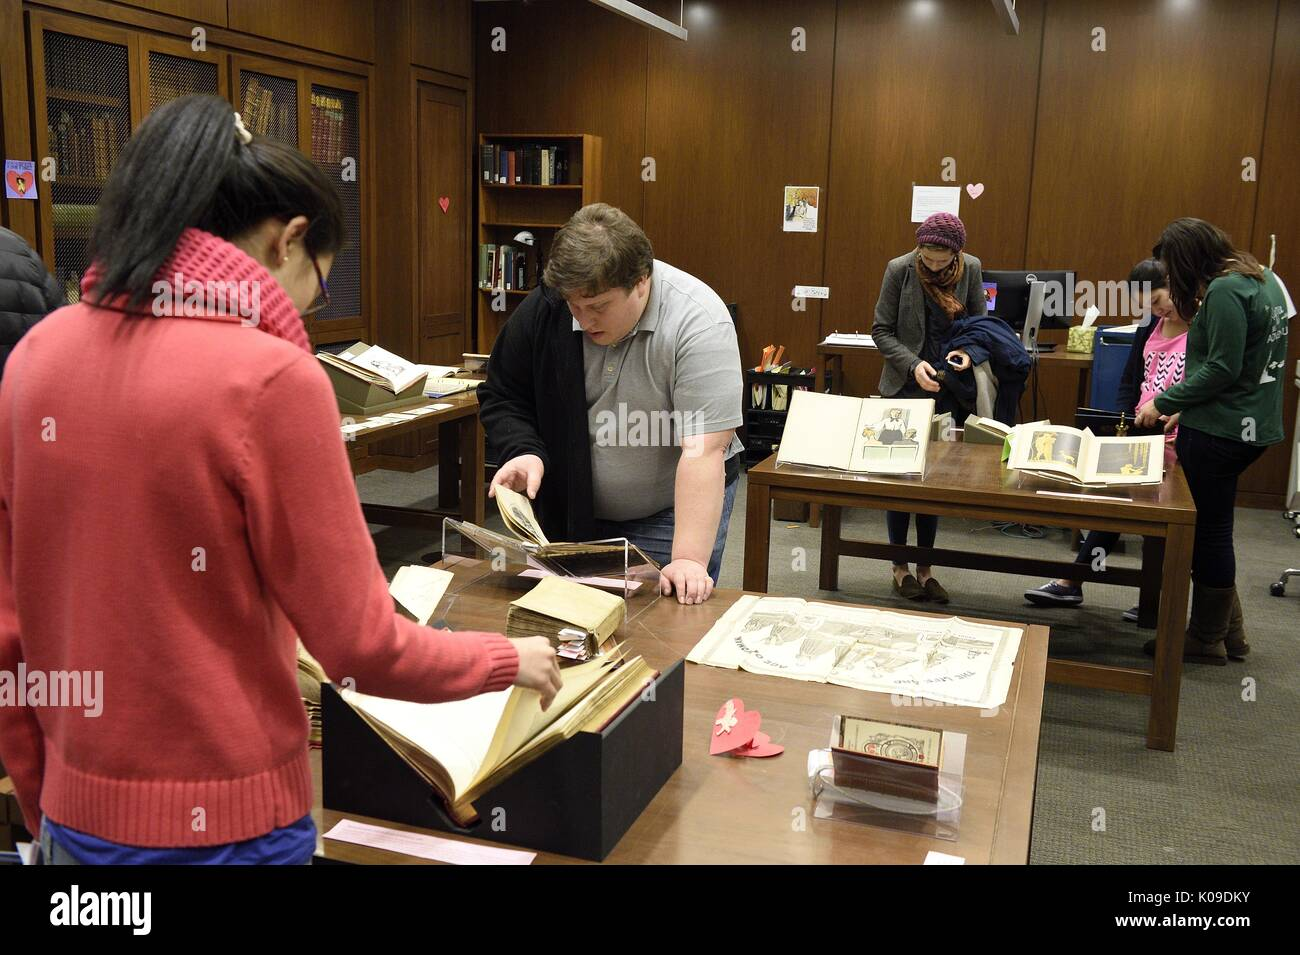 Students scattered around a room all looking down and interacting with different artifacts at the library event, Dirty Books and Longing Looks, February 11, 2016. - Stock Image